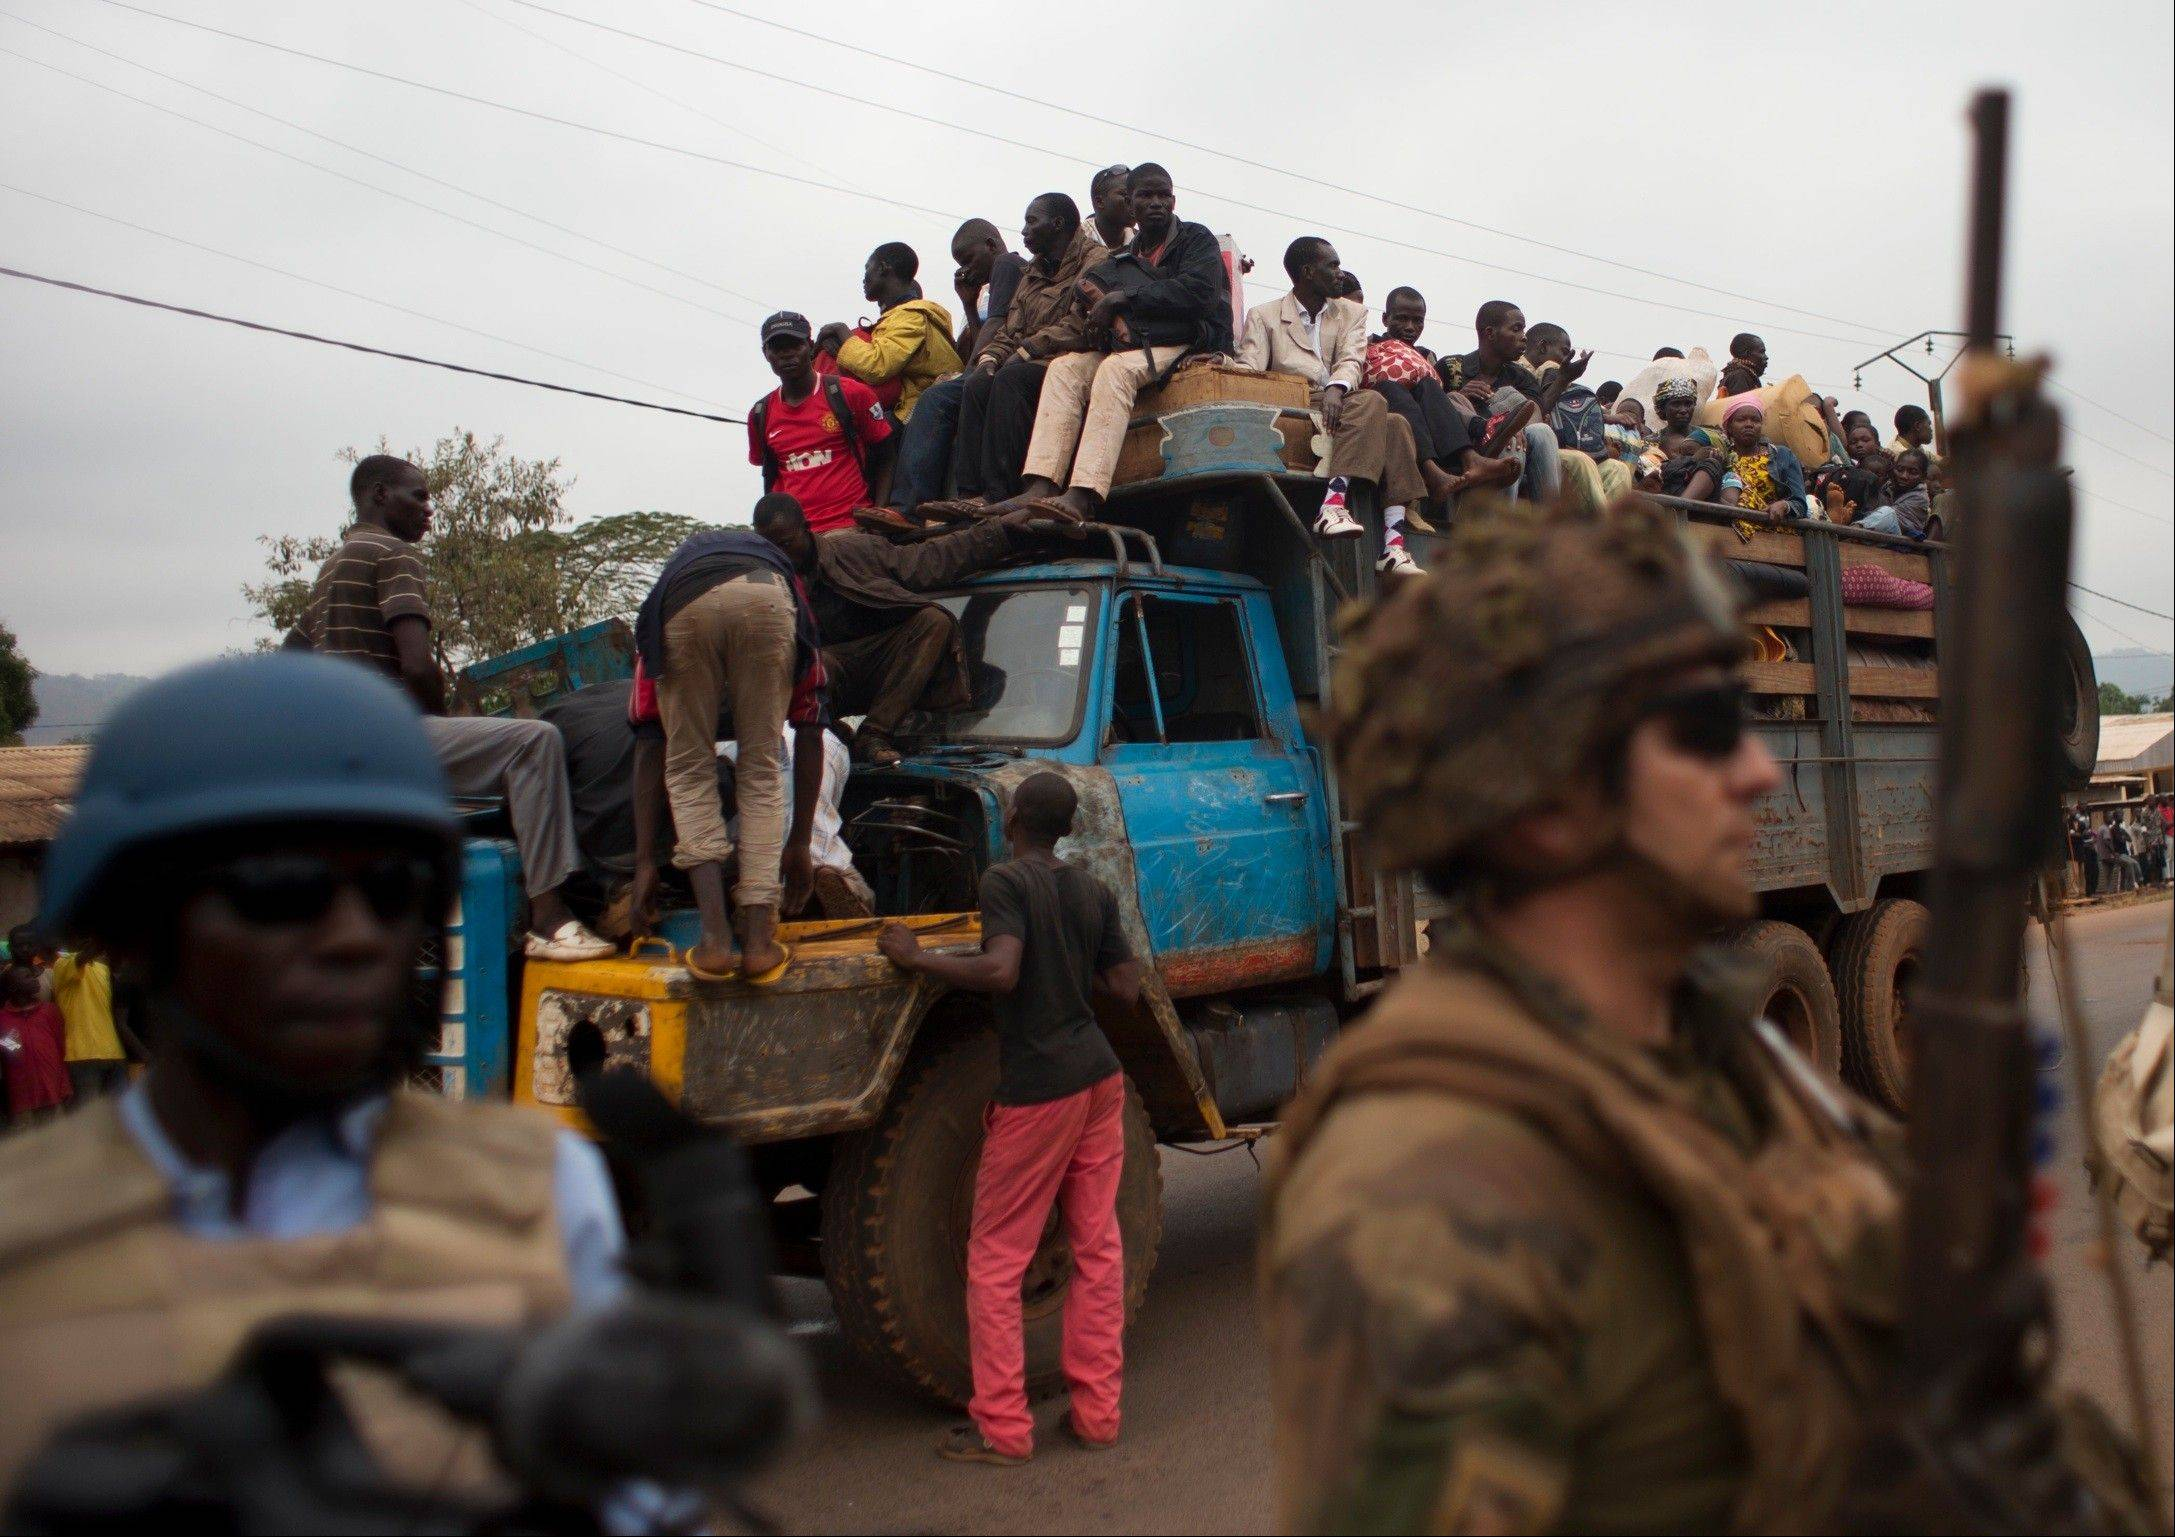 Central African Republic has long teetered on the brink of anarchy, but the new unrest unleashed by a March 2013 coup has ignited previously unseen sectarian hatred between Christians and Muslims. More than 1,000 people were killed in December alone and nearly 1 million displaced.